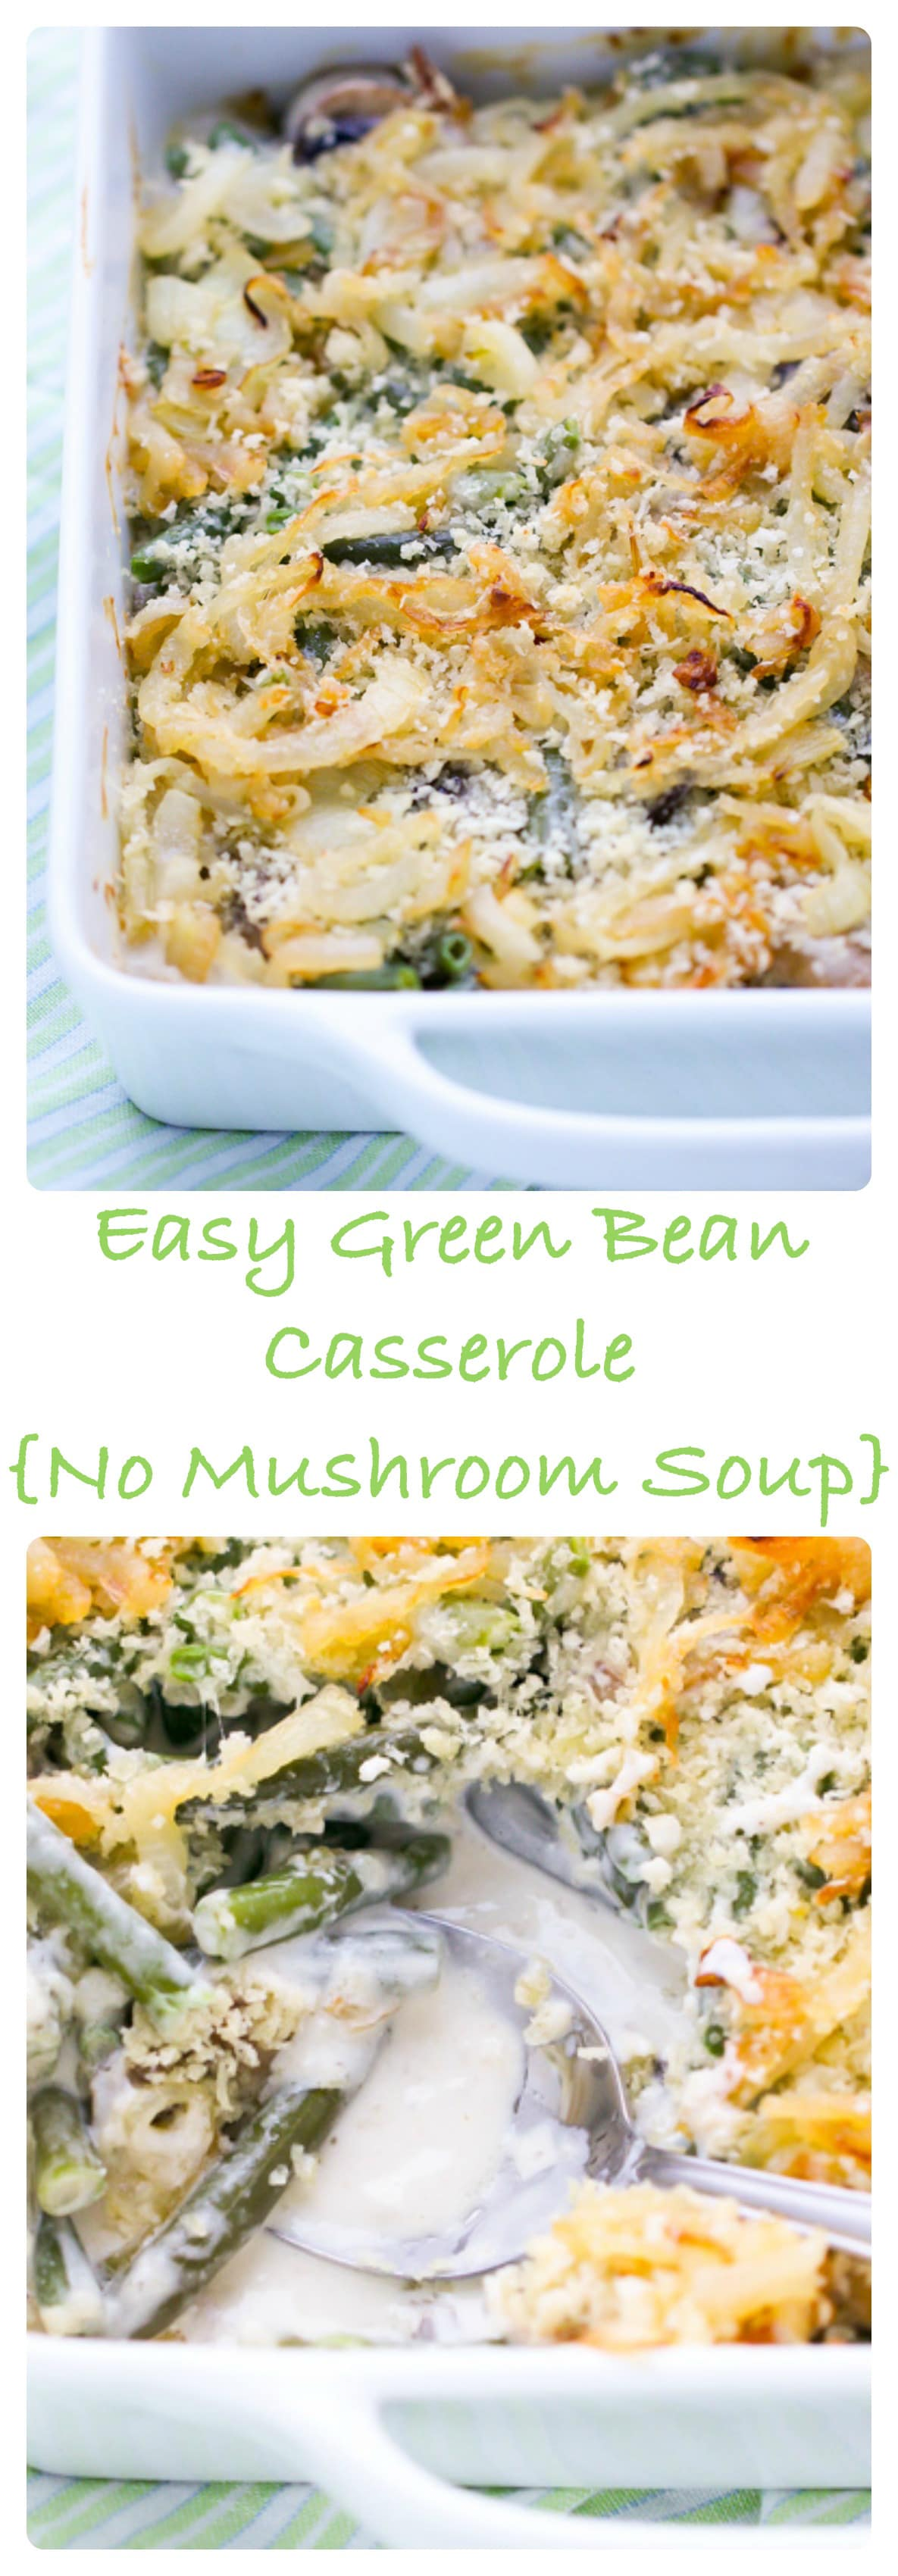 easy-green-bean-casserole-recipe-no-mushroom-soup